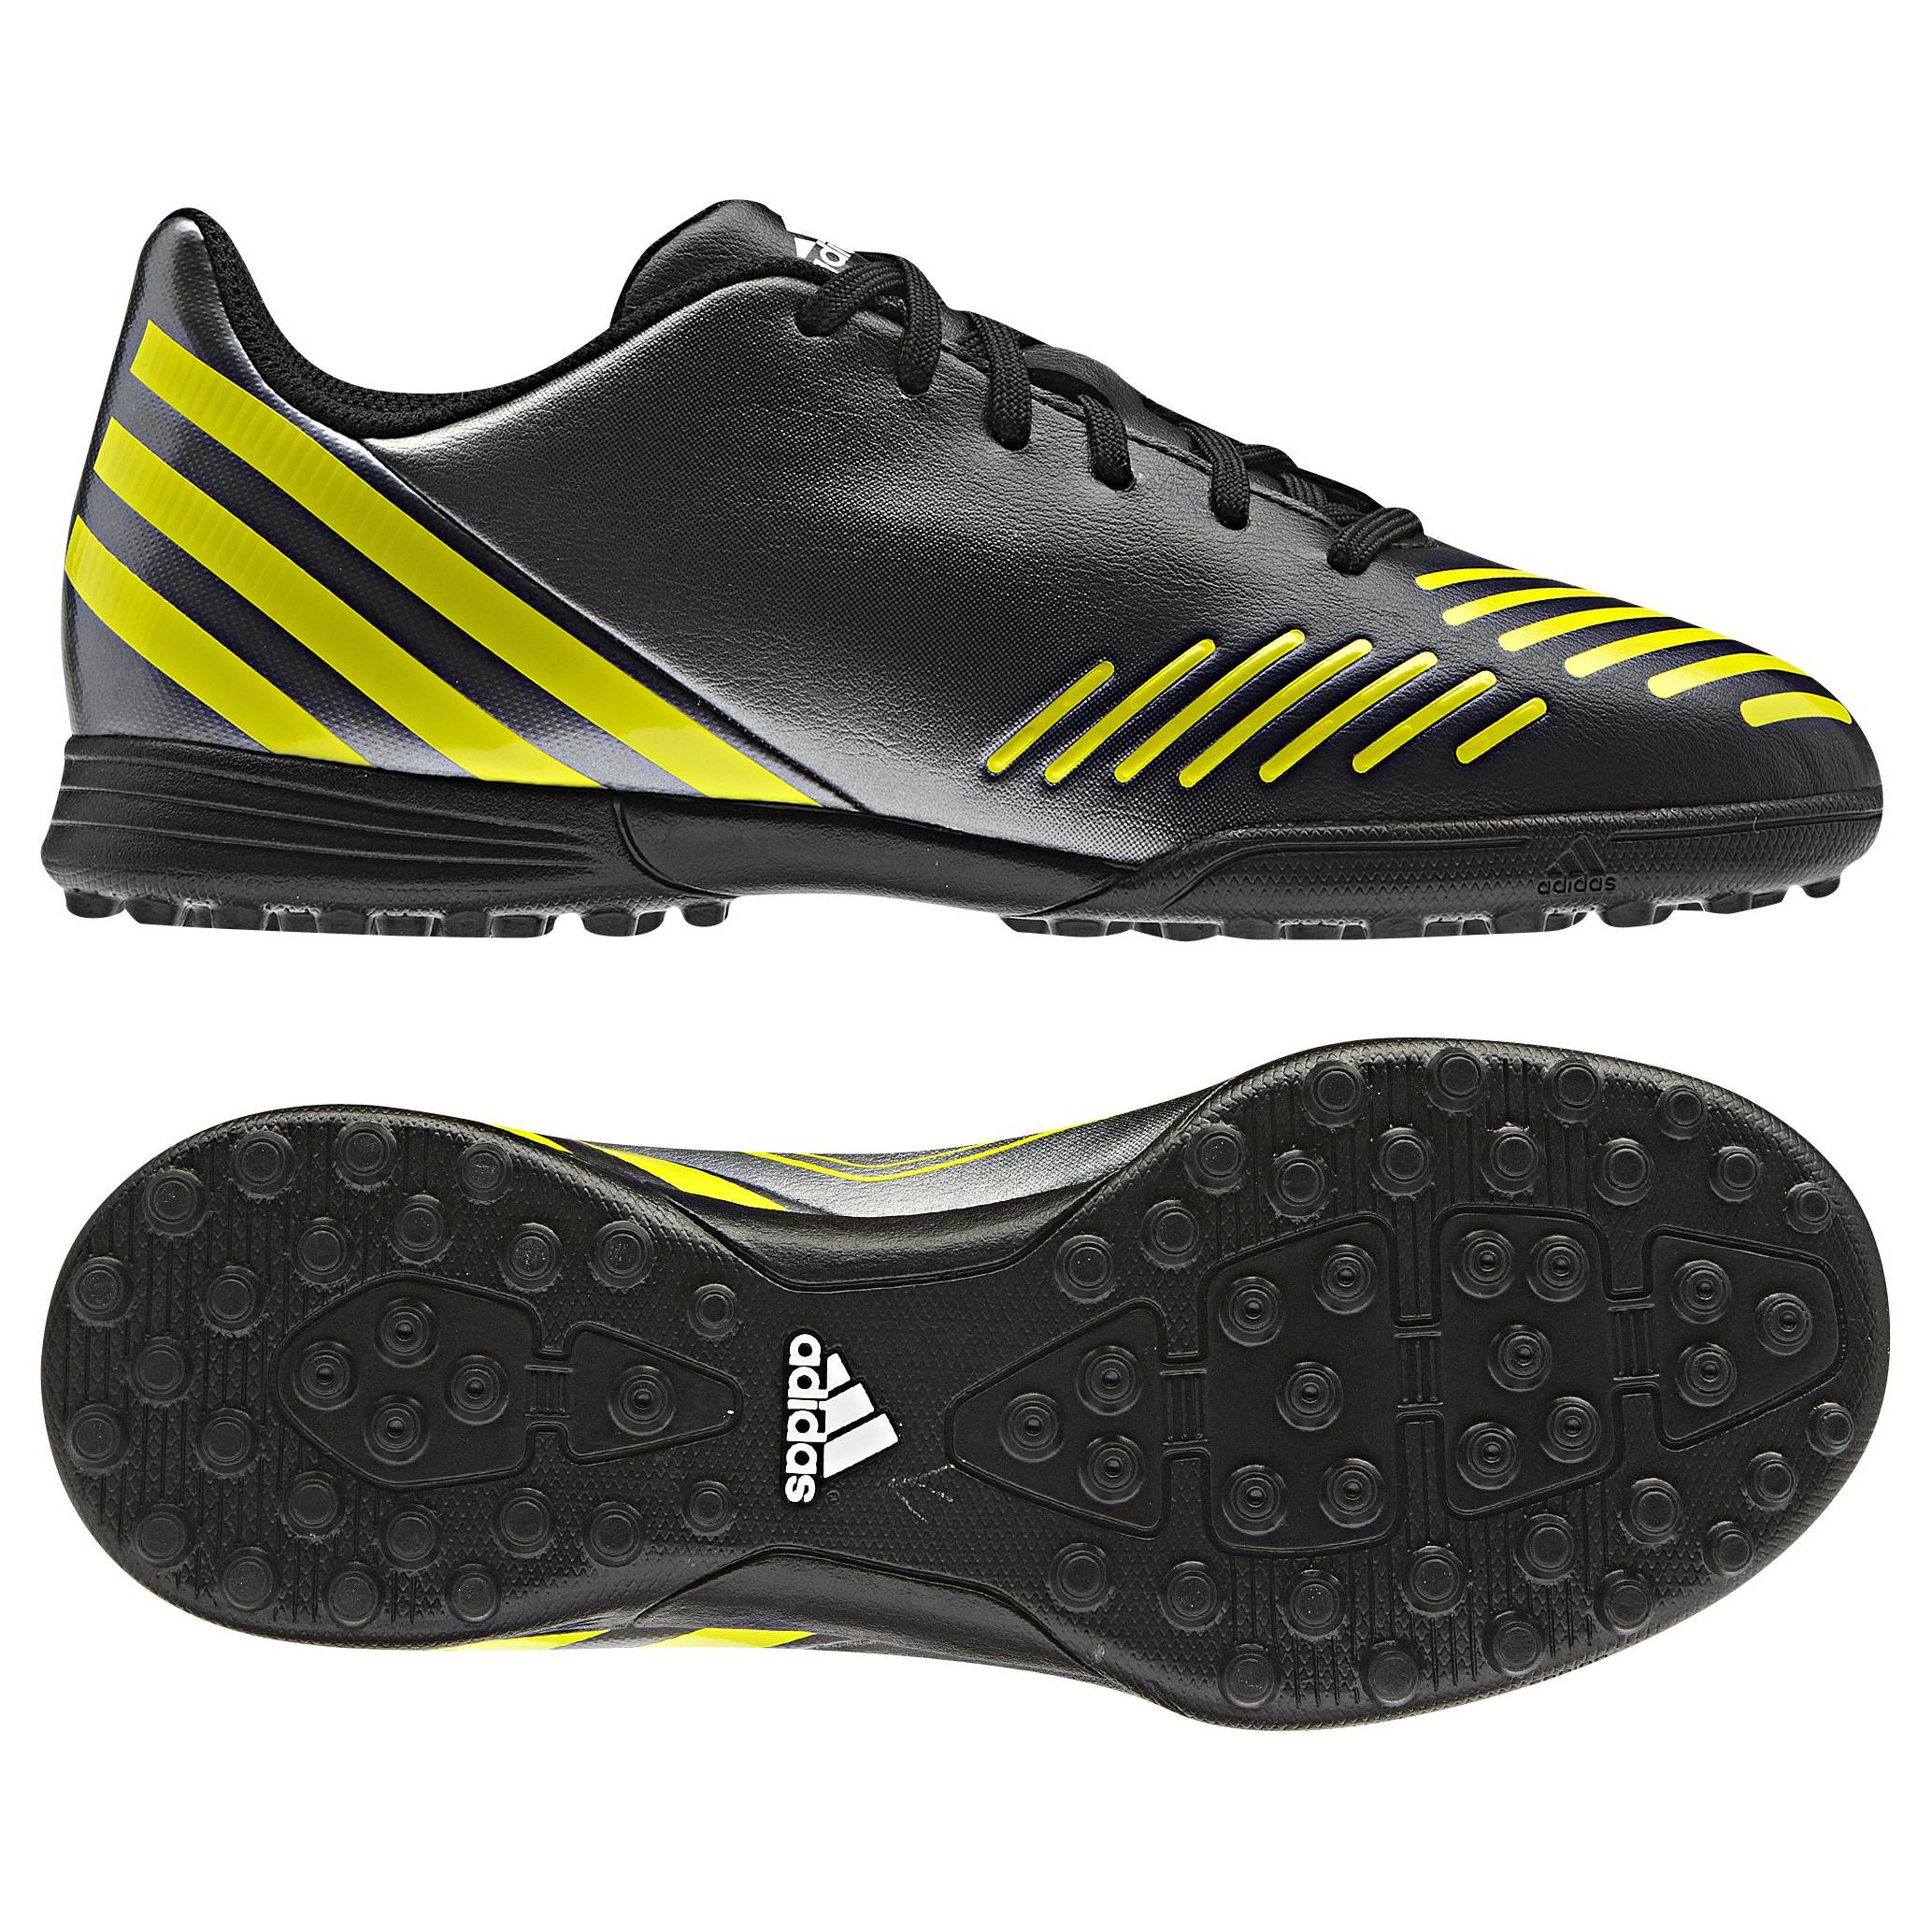 Adidas Predito LZ TRX Astro Turf Trainers - Black/Lab Lime/Neo Iron Met - Kids